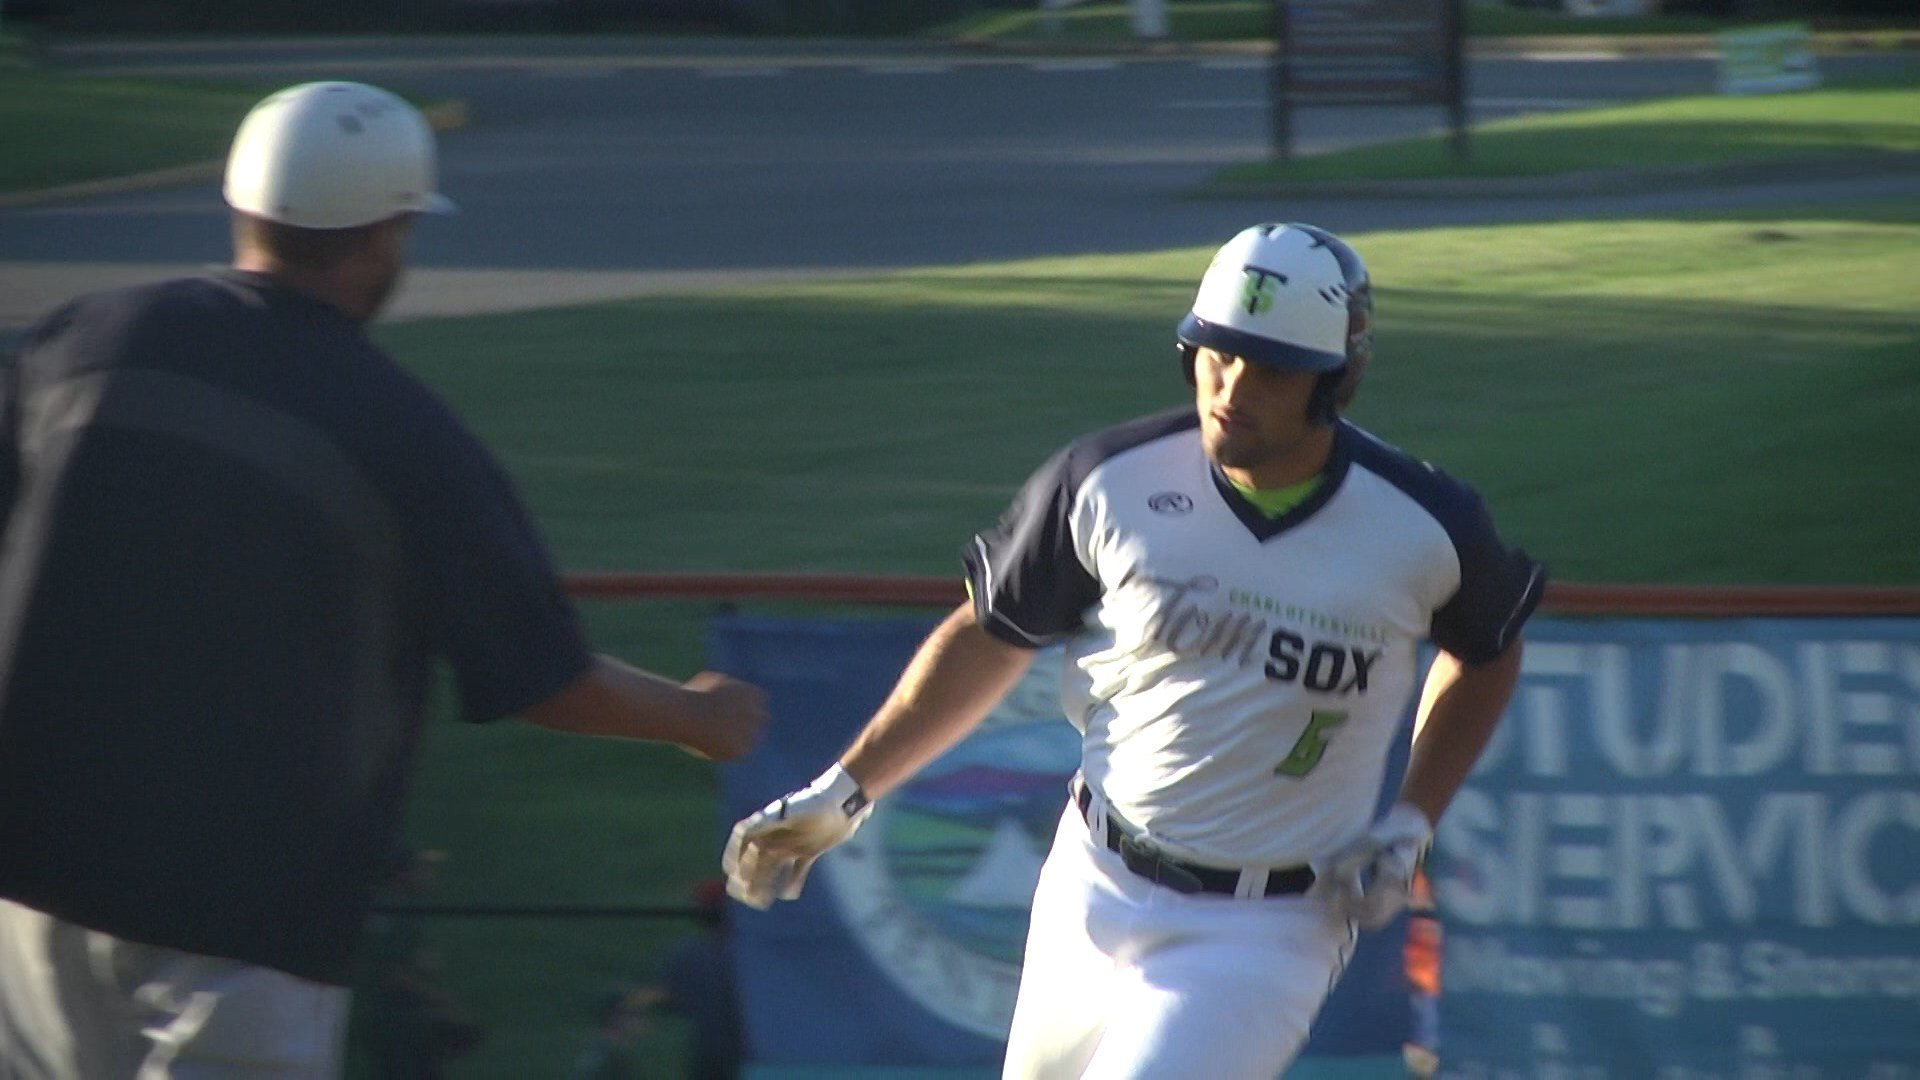 Dom D'Alessandro had three RBI, including a two-run home run